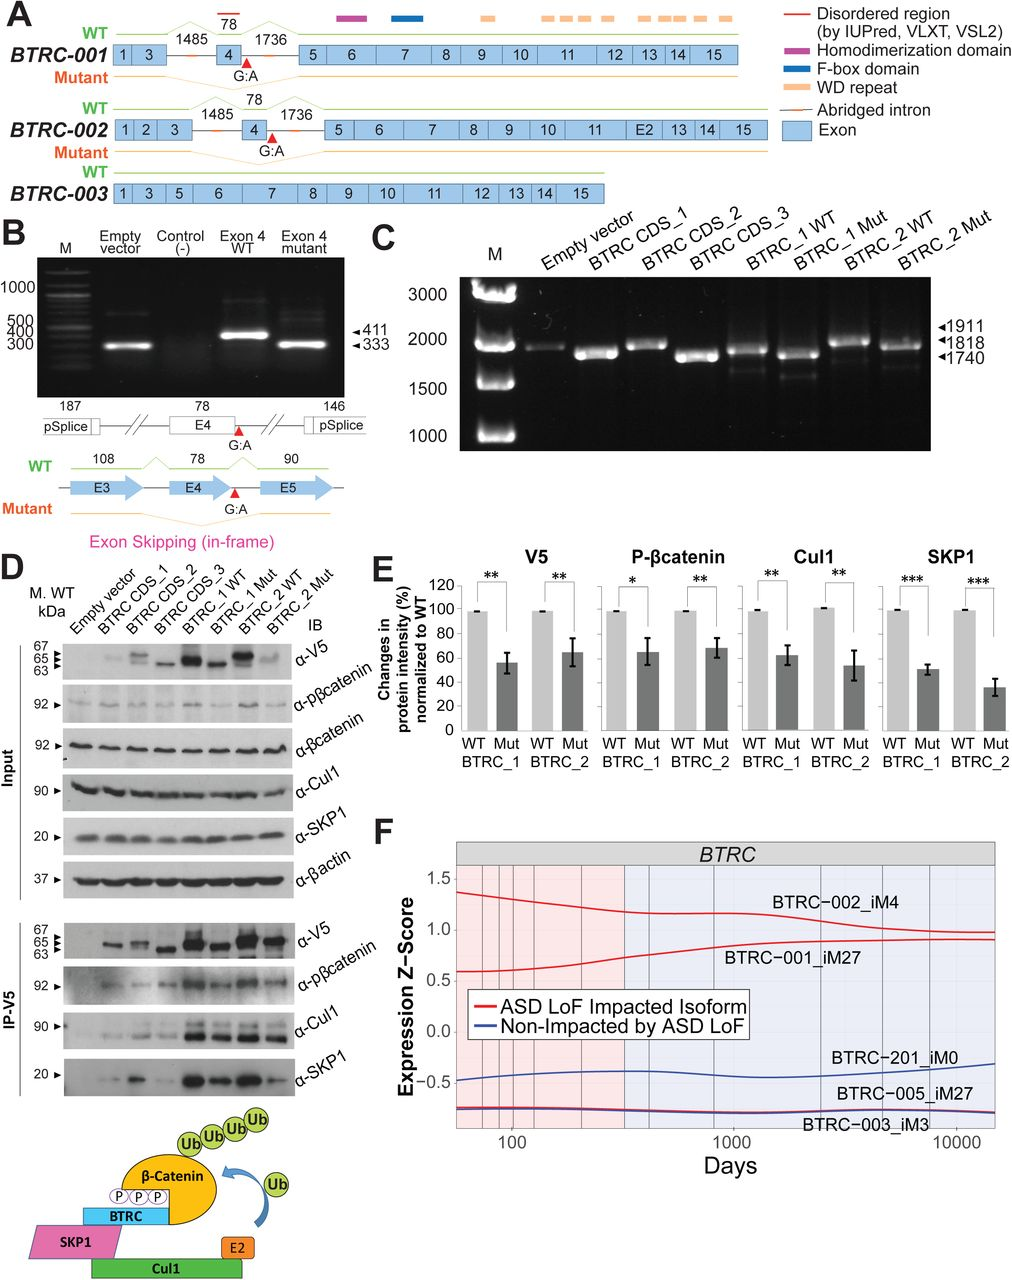 The de novo autism splice site mutation causes exon skipping in BTRC isoforms and reduces their translational efficiency. (A) The exon structure of three splicing isoforms of the BTRC gene showing positions of the cloned abridged introns and the splice site mutation; numbers denote base pairs (bp). (B) Minigene assays demonstrate exon 4 skipping as a result of the splice site mutation. The assays show the RT-PCR results performed using total RNA from HeLa cells transfected with BTRC minigene constructs; numbers denote base pairs. (C) Splicing assays with the full-length constructs carrying abridged introns confirm exon skipping observed in the minigene assays. (D) Immunoblotting (IB) from the whole cell lysates of HeLa cells transfected with different BTRC minigene constructs and an empty vector, as indicated. Membranes were probed to observe BTRC overexpression, and to investigate expression of p-β-catenin, Cul1 and SKP1. β-actin was used as loading control. <t>Immunoprecipitation</t> was performed with the antibody recognizing V5-tag and proteins were detected by immunoblotting (IB) with the p-β-catenin, Cul1, SKP1 and V5 antibodies. The splice site mutation causes reduced translational efficiency of both BTRC_1Mut and BTRC_2Mut mutant isoforms as compared to their wild type counterparts. Schematic diagram of Skp1-Cul1-BTRC ubiquitin protein ligase complex is shown at the bottom. (E) Quantification of protein pull-downs with V5-IP using ImageJ software. The band intensity values were normalized to WT expression levels. Error bars represent 95% confidence intervals (CI) based on 3 independent experiments. On average, 40% reduction of BTRC protein expression is observed as a result of a mutation. Consequently, the reduction of the corresponding BTRC binding partners (p-β-catenin, Cul1, and SKP1) is also observed. (F) Expression profiles of brain-expressed BTRC isoforms show higher expression of ASD-impacted BTRC-001 and BTRC-002. Numbers denote base pairs (a, b, c p